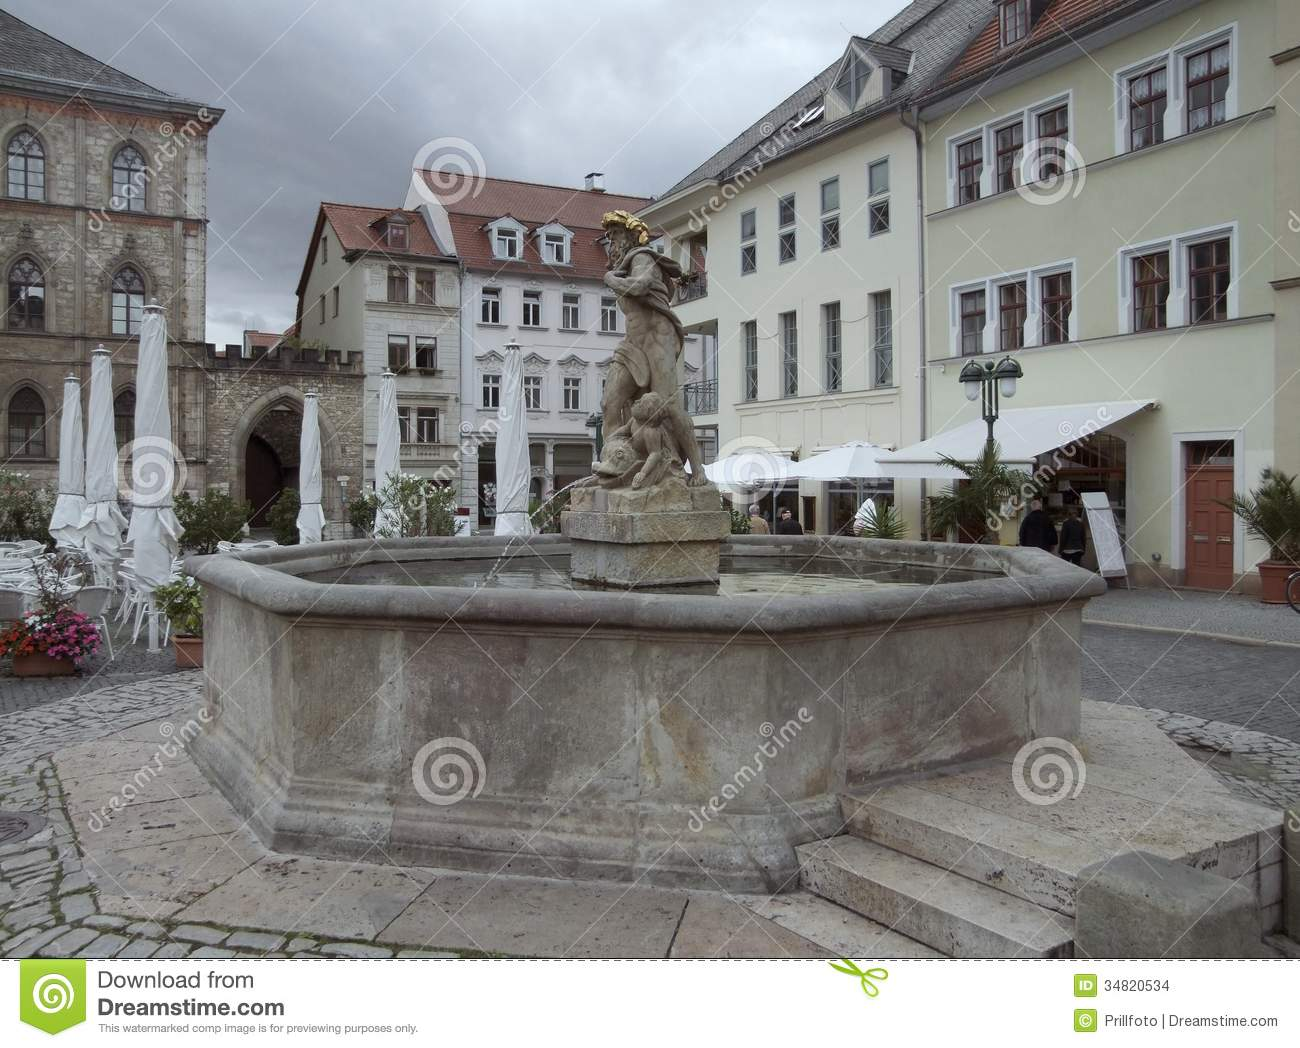 Weimar Germany  city photos gallery : City view of Weimar, a city in Thuringia Germany .